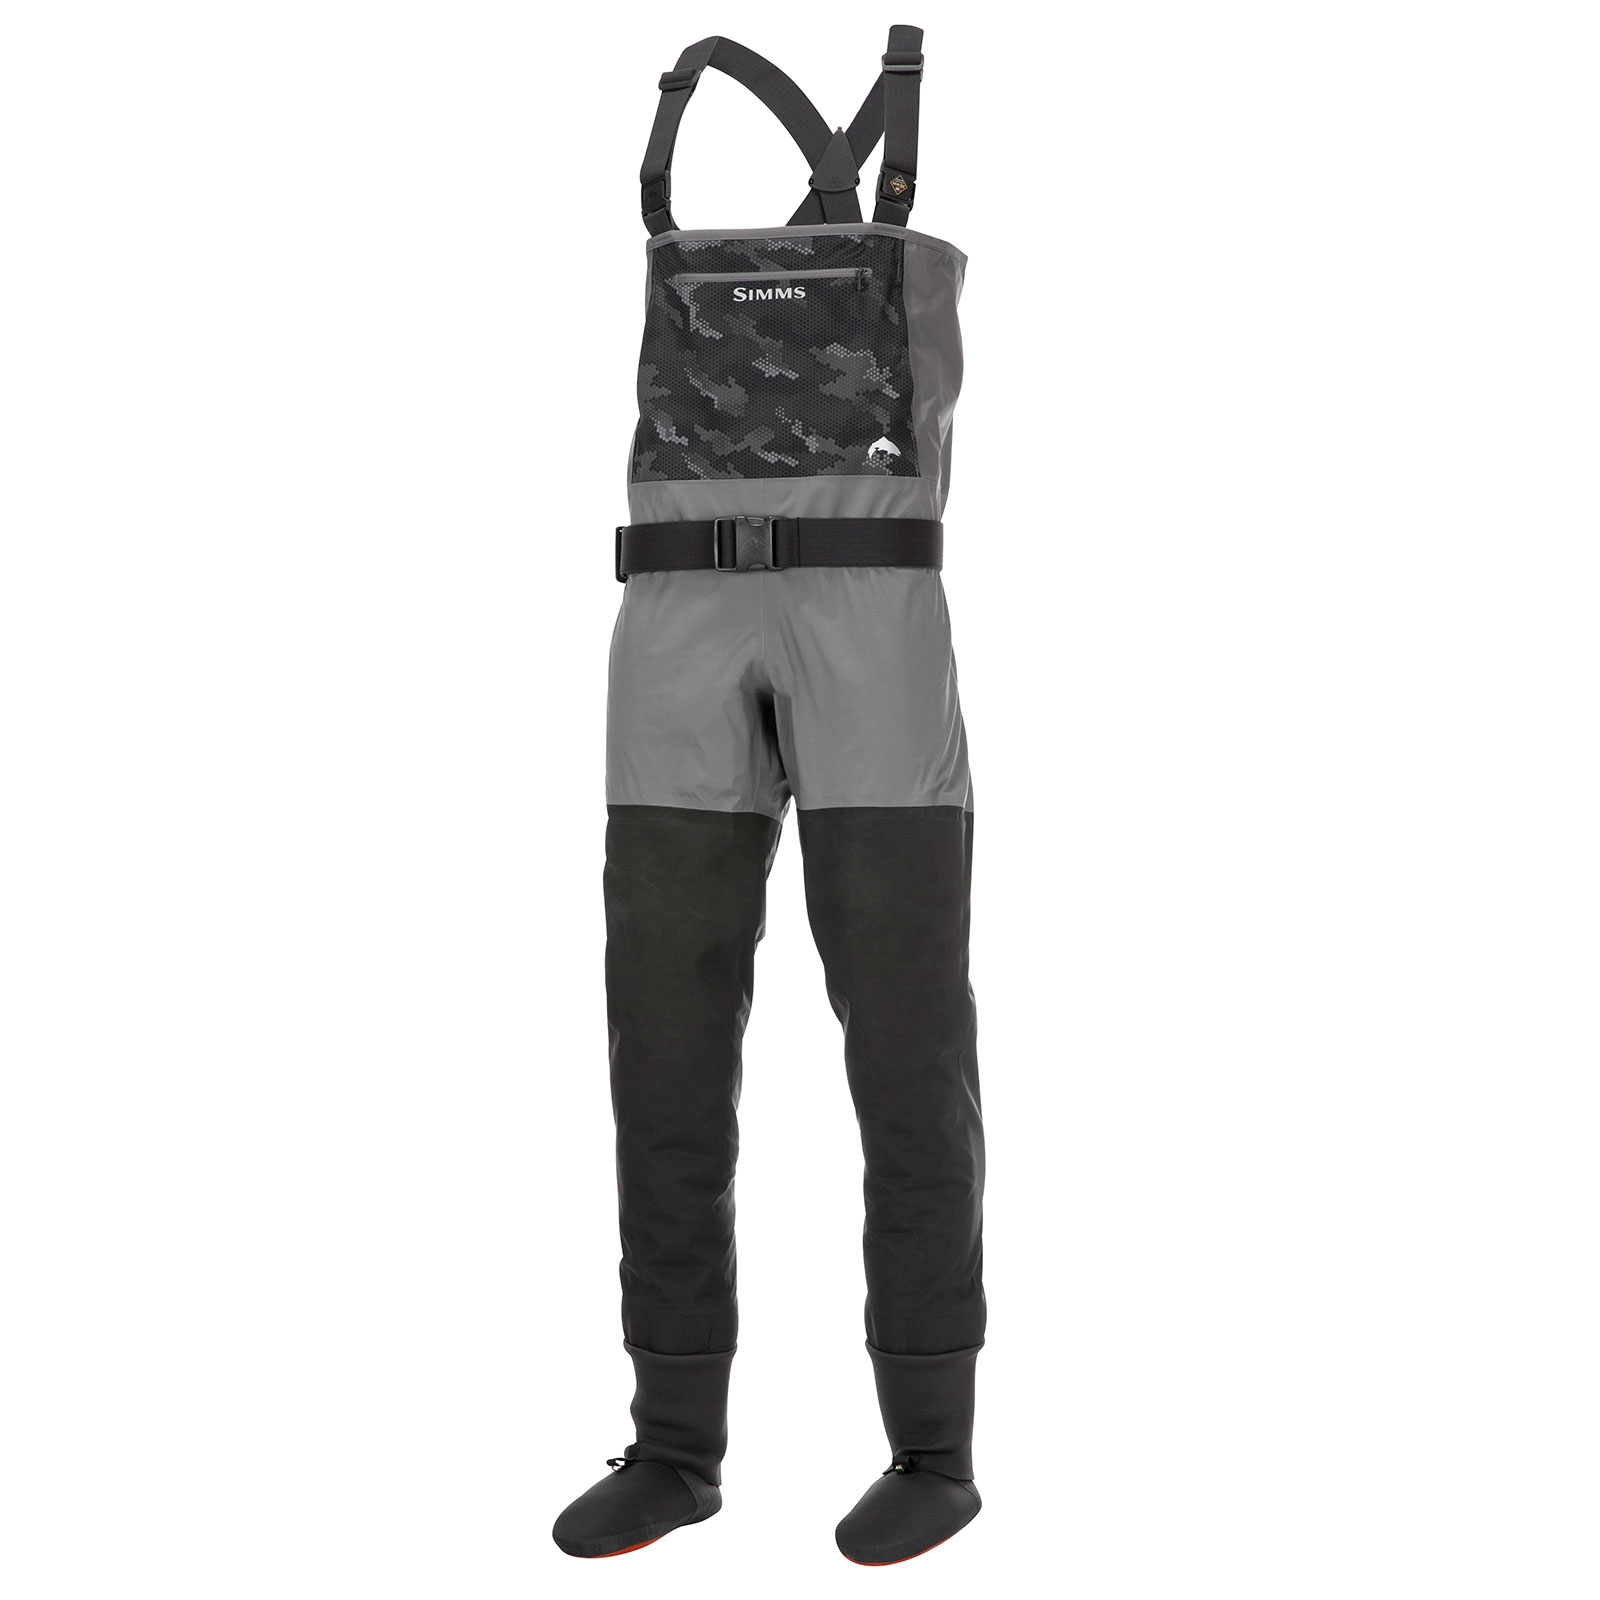 Simms Men's Guide Classic Stockingfoot Chest Waders